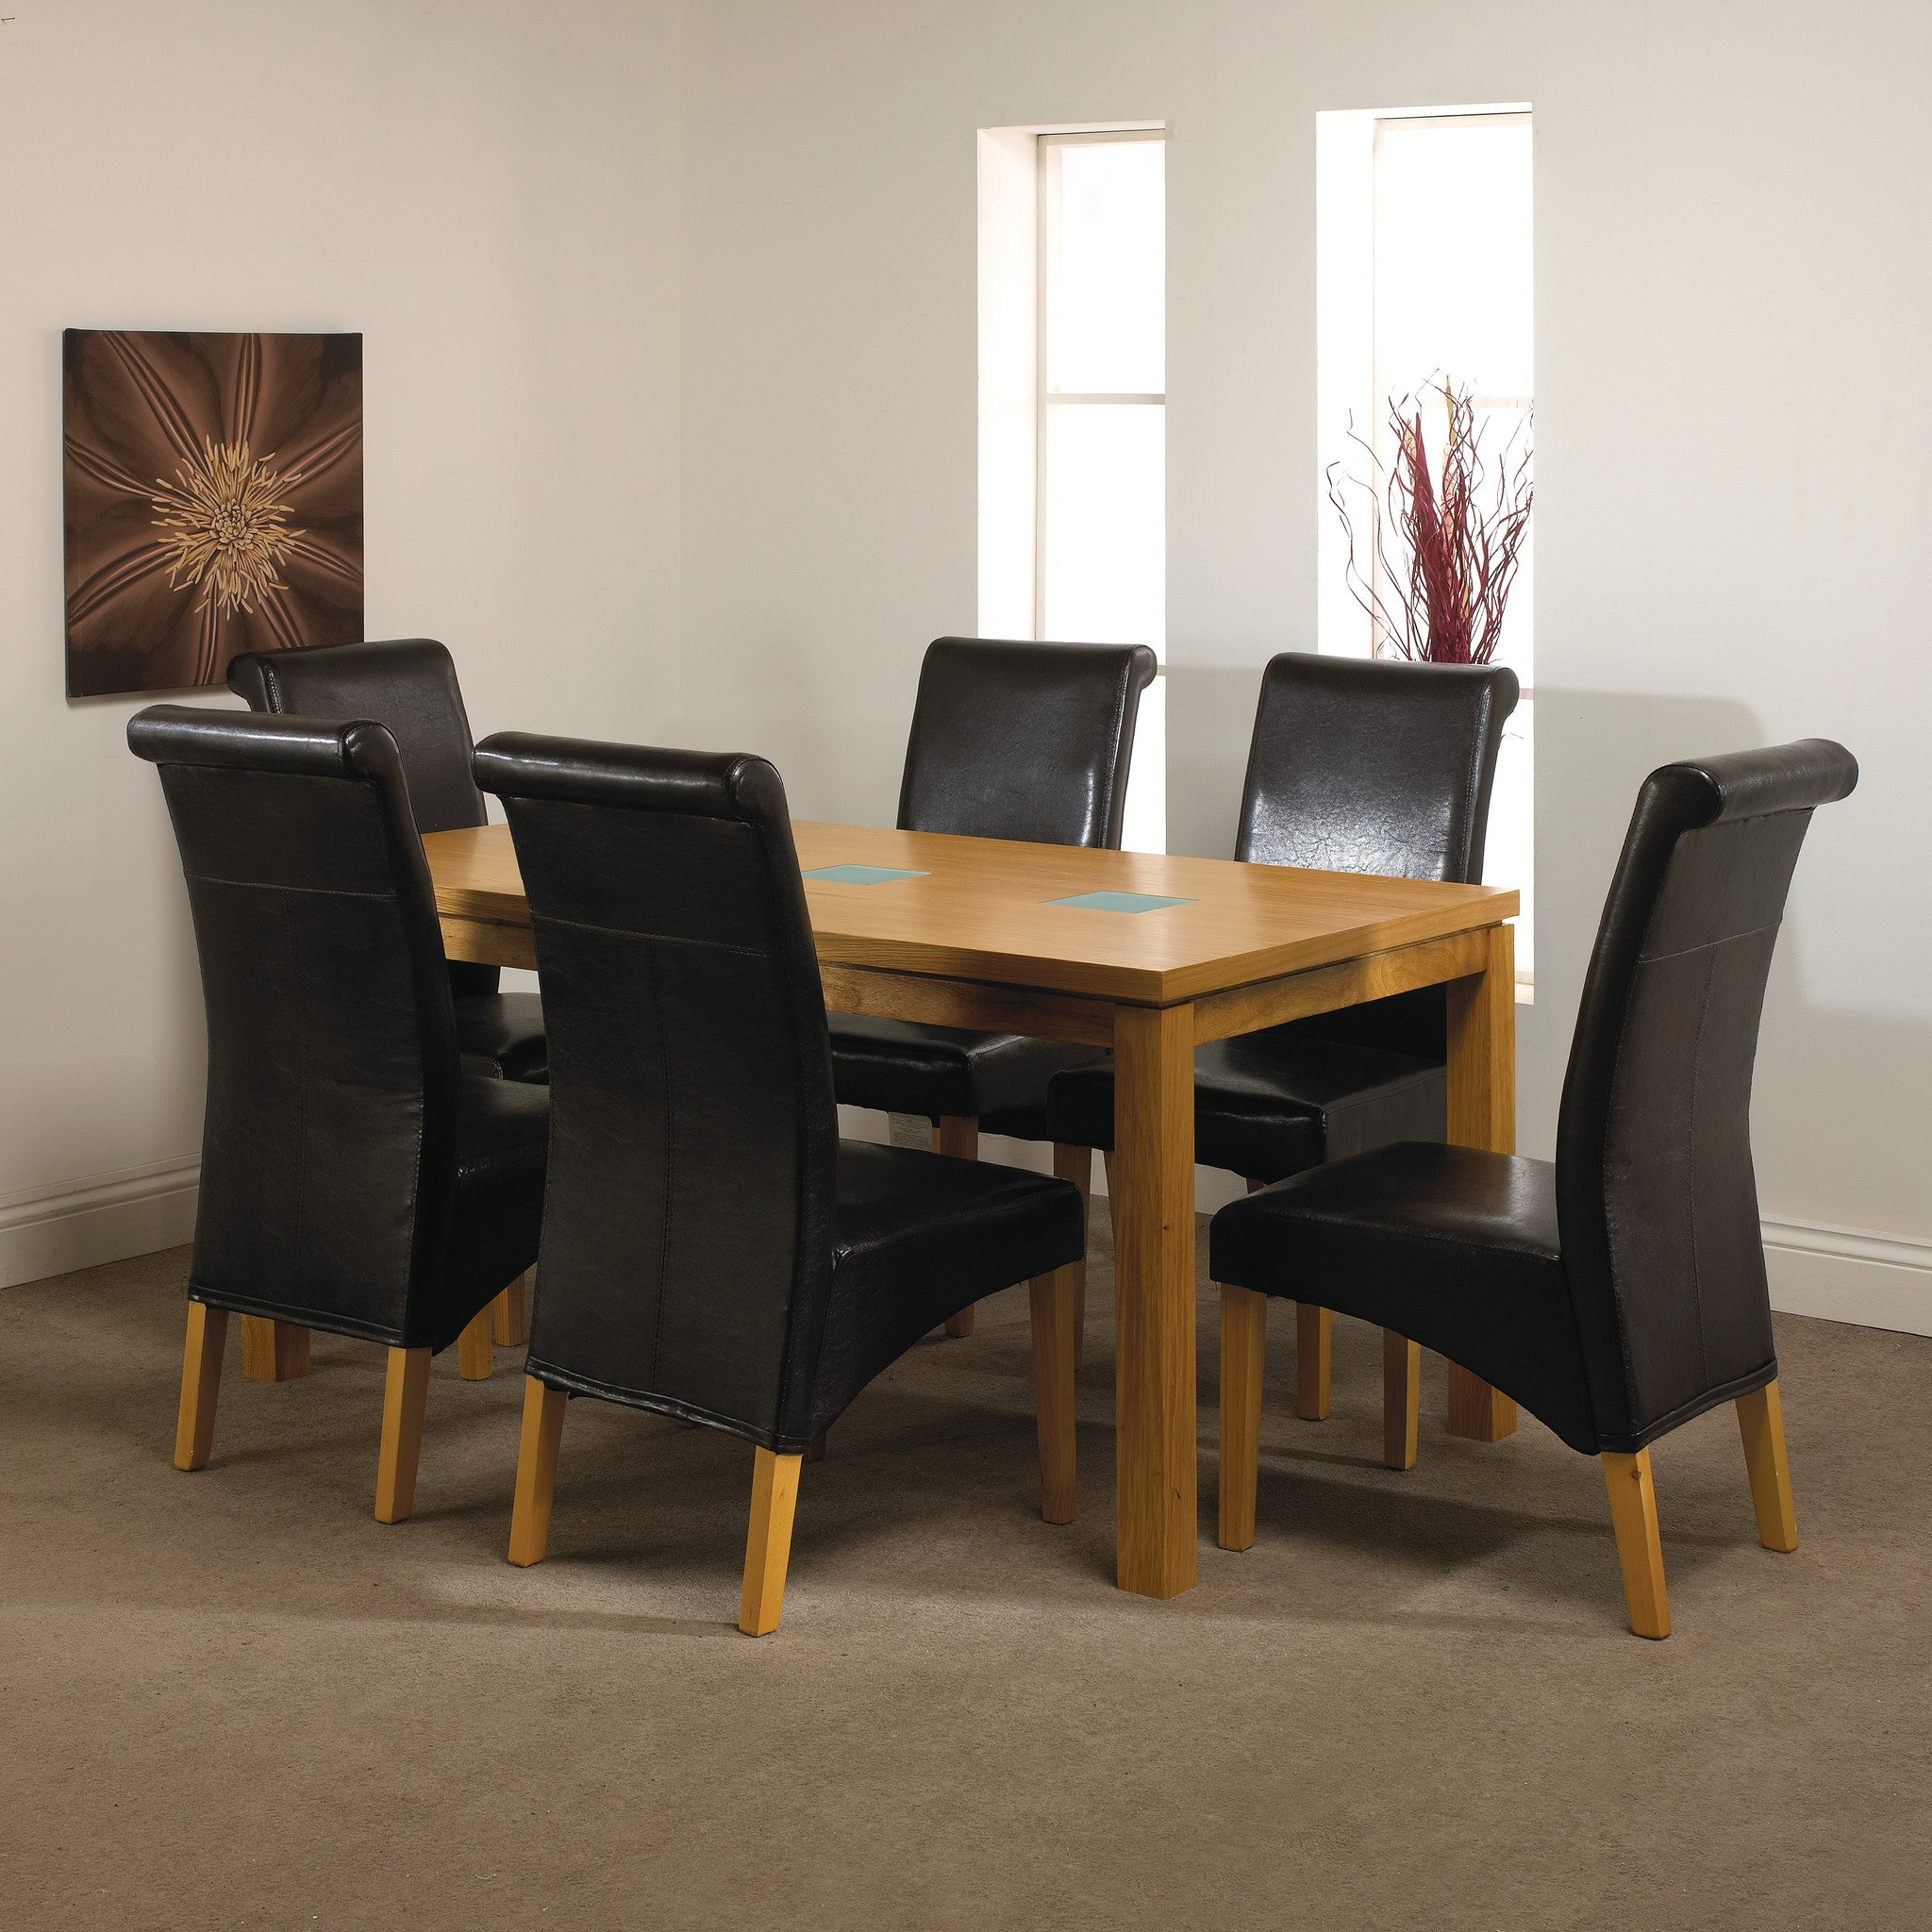 Glass Oak Dining Table 4 Parson Red Chairs AHOC LTD